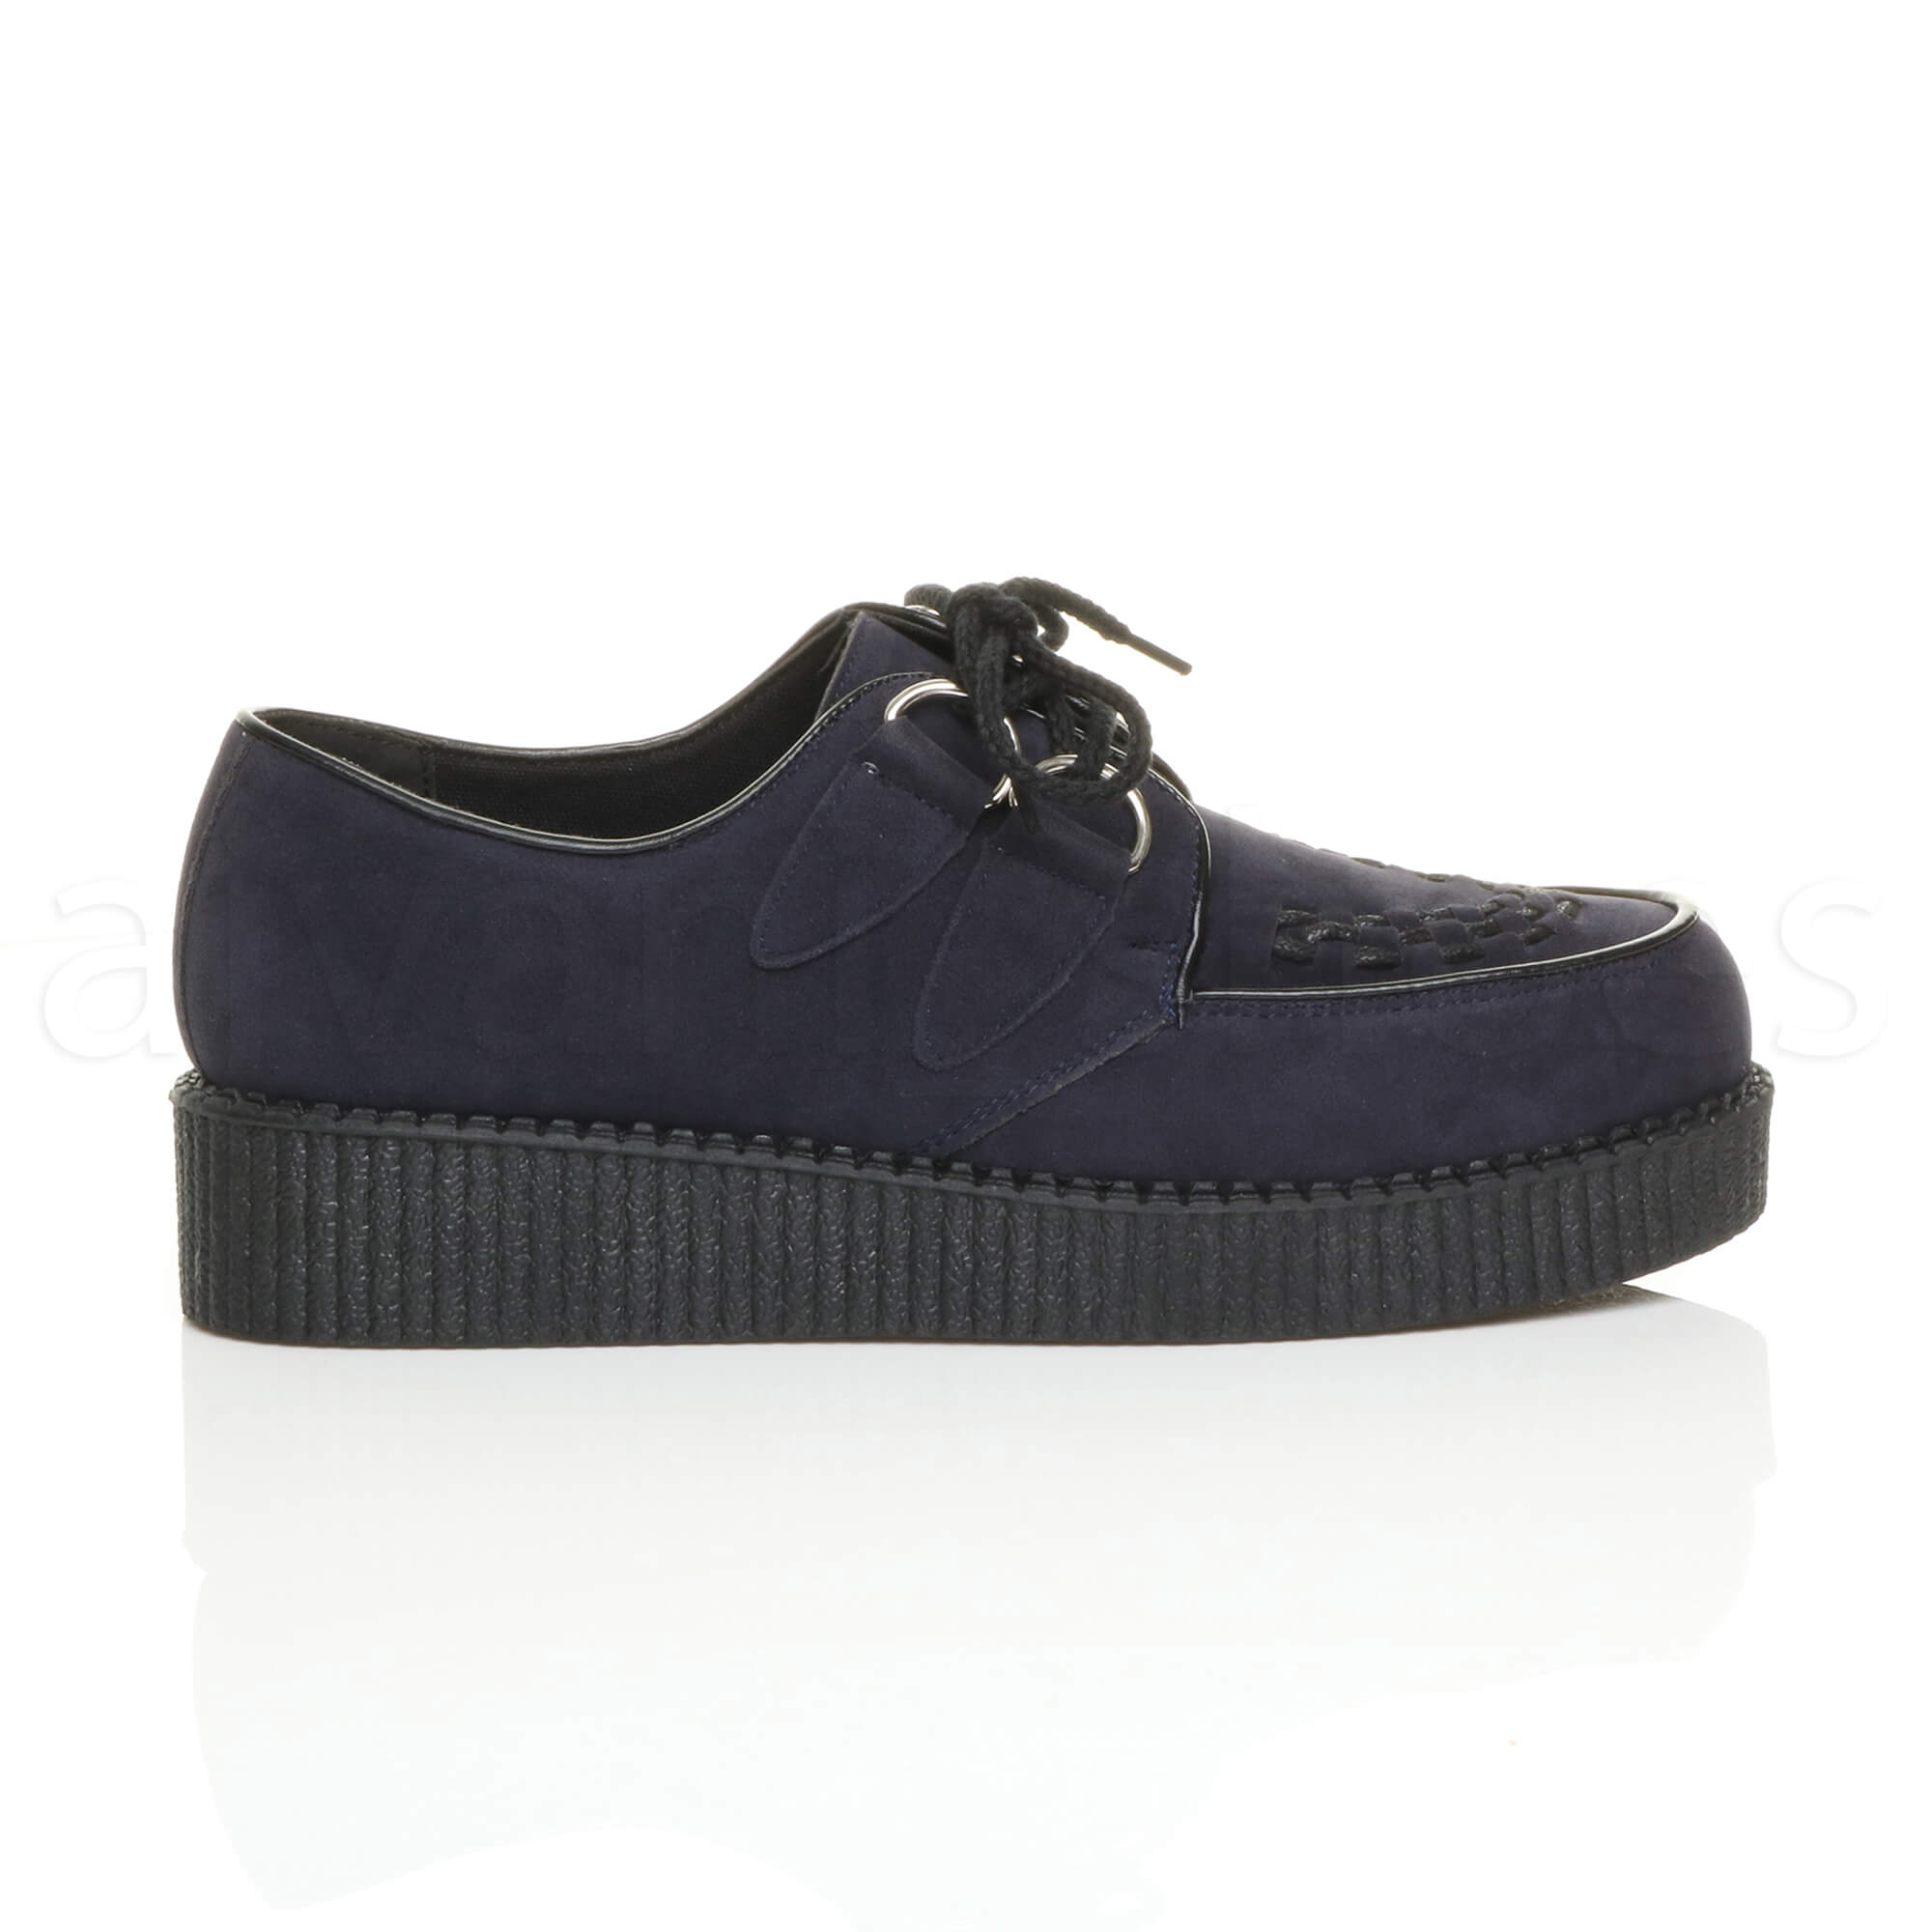 MENS-PLATFORM-WEDGE-LACE-UP-GOTH-PUNK-BROTHEL-CREEPERS-BEETLE-CRUSHERS-SHOES thumbnail 38